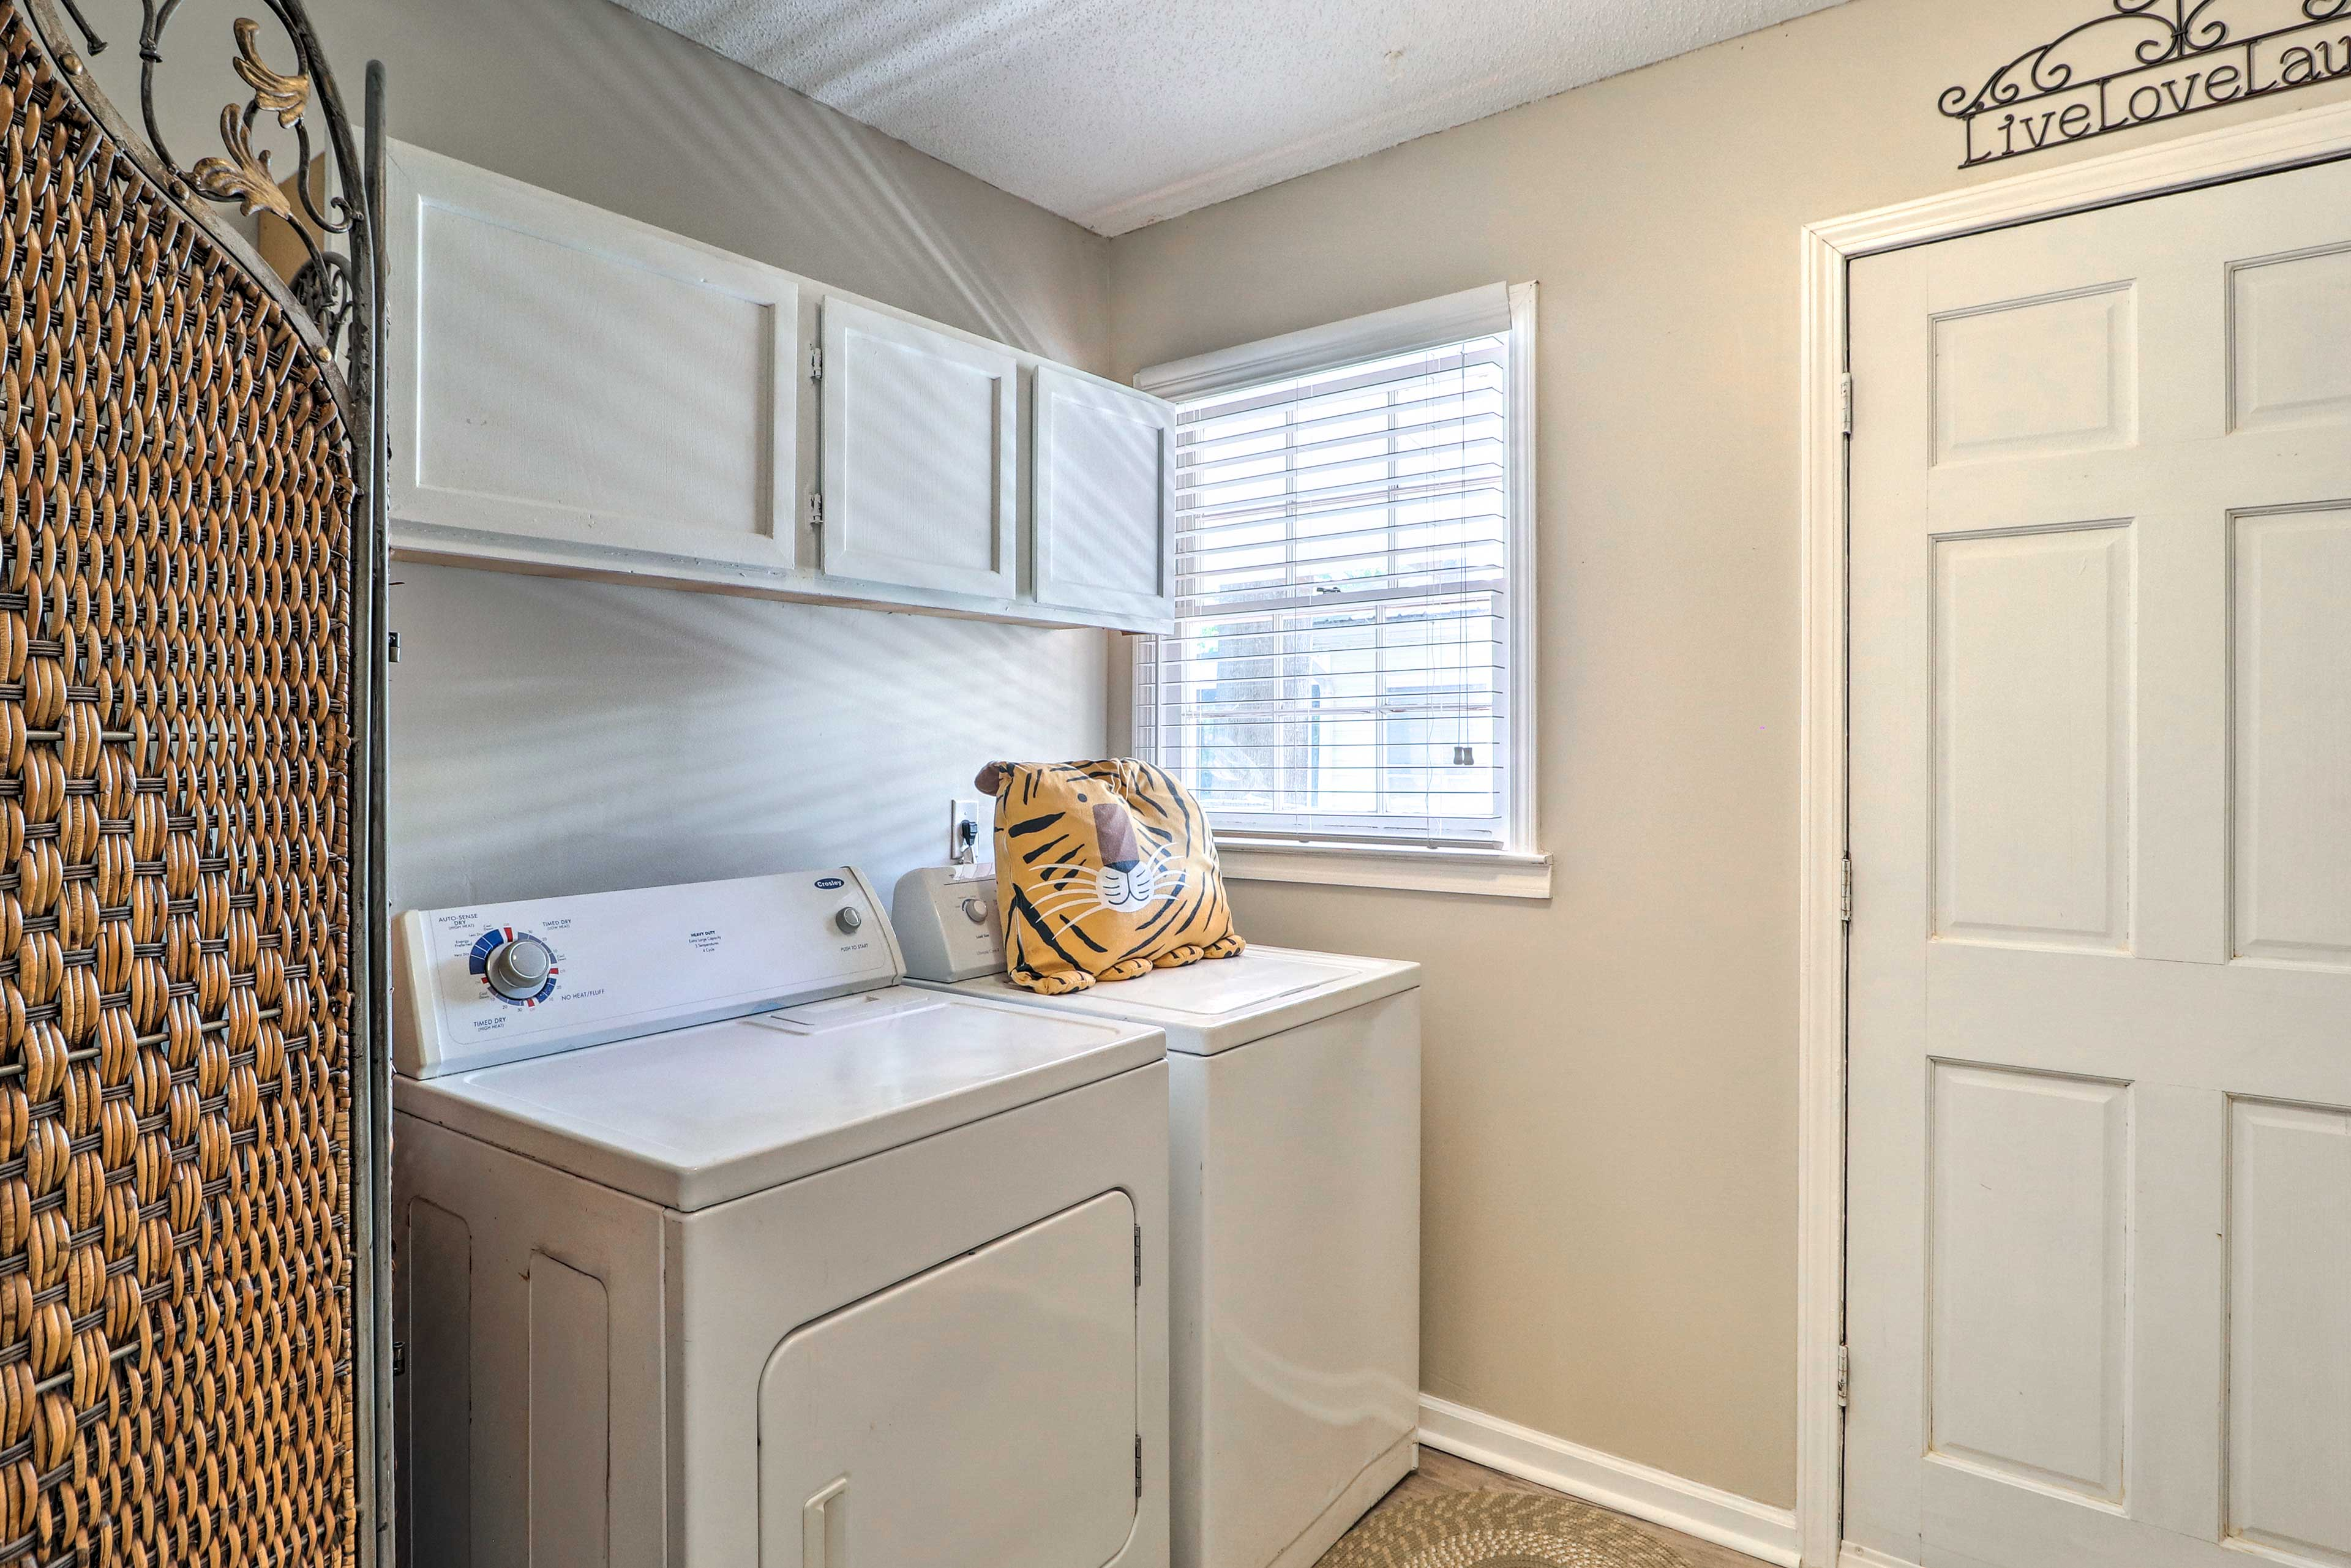 A laundry room adds a convenient touch to your stay!